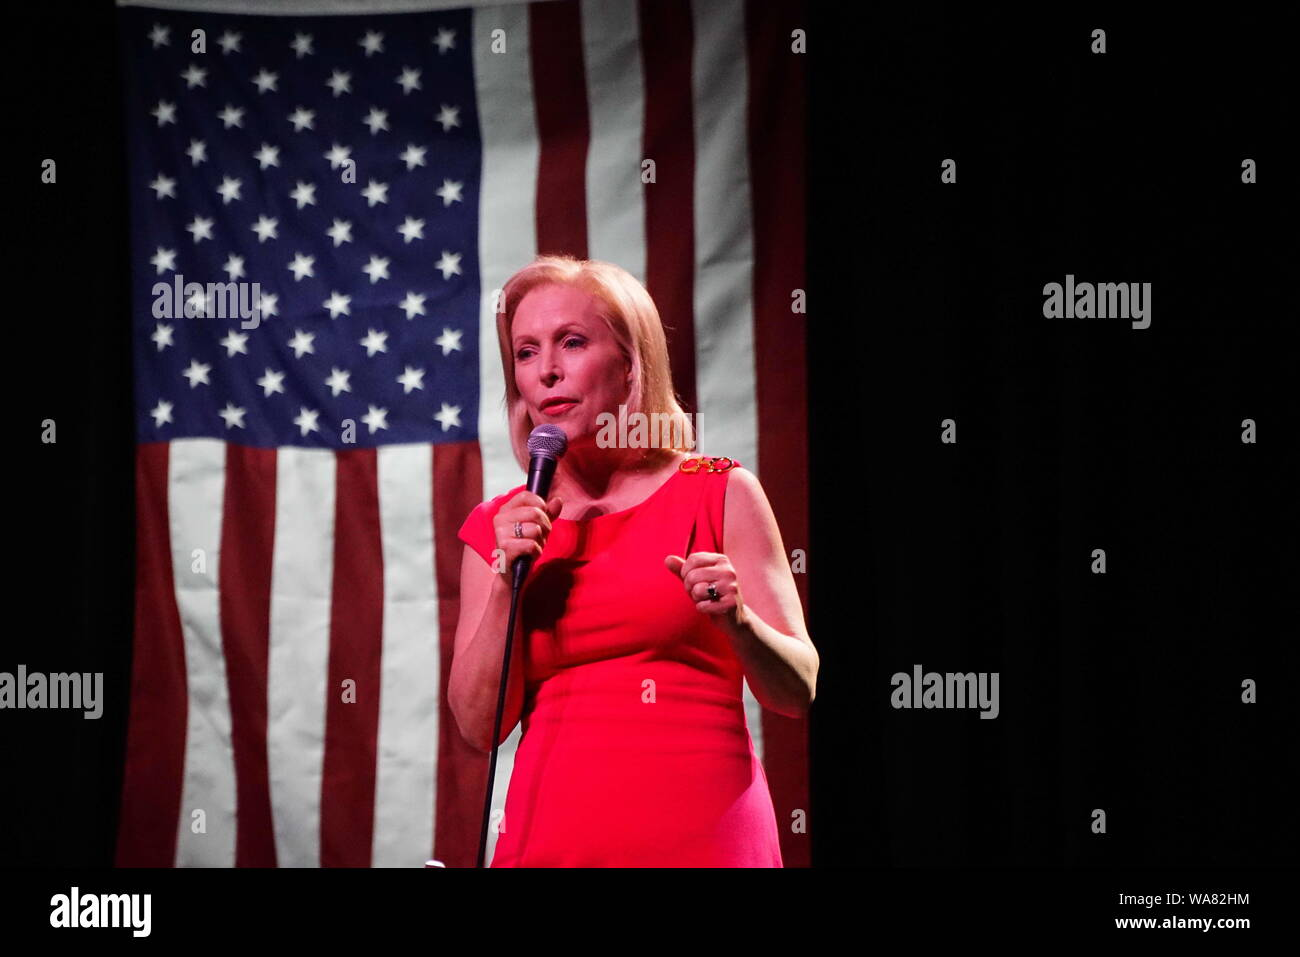 St. Louis, Missouri, USA. 18th Aug, 2019. Presidential Candidate Senator KIRSTEN GILLIBRAND speaks at a town hall meeting in St. Louis, Missouri 10 days before a new restrictive abortion bill becomes law. Credit: Steve Pellegrino/ZUMA Wire/Alamy Live News Stock Photo